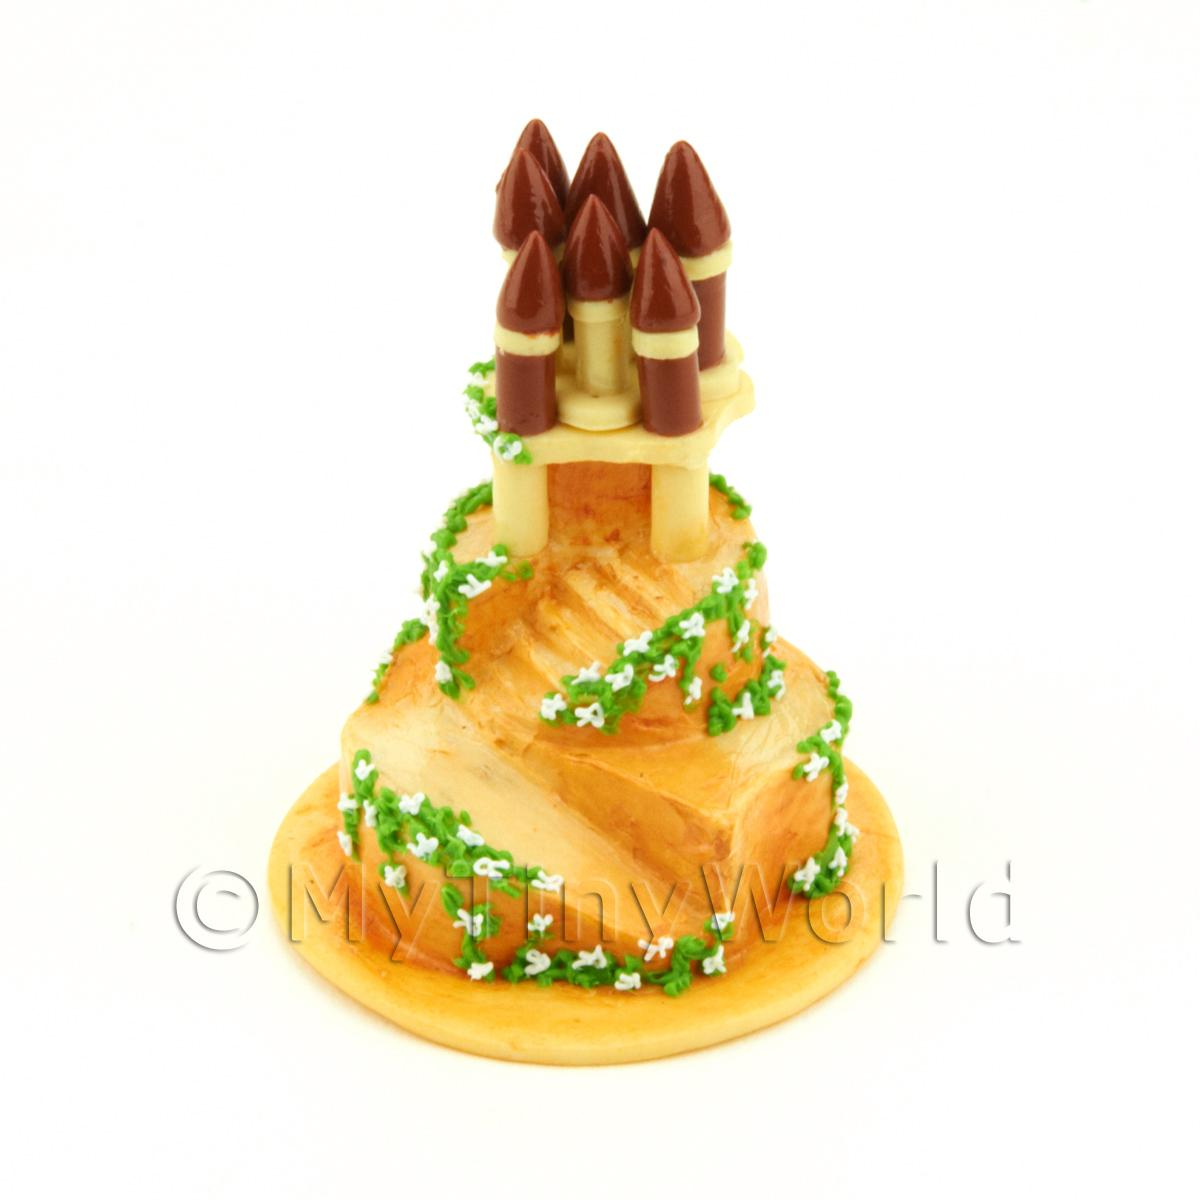 Dolls House Miniature 3 Tier Princess Castle Cake